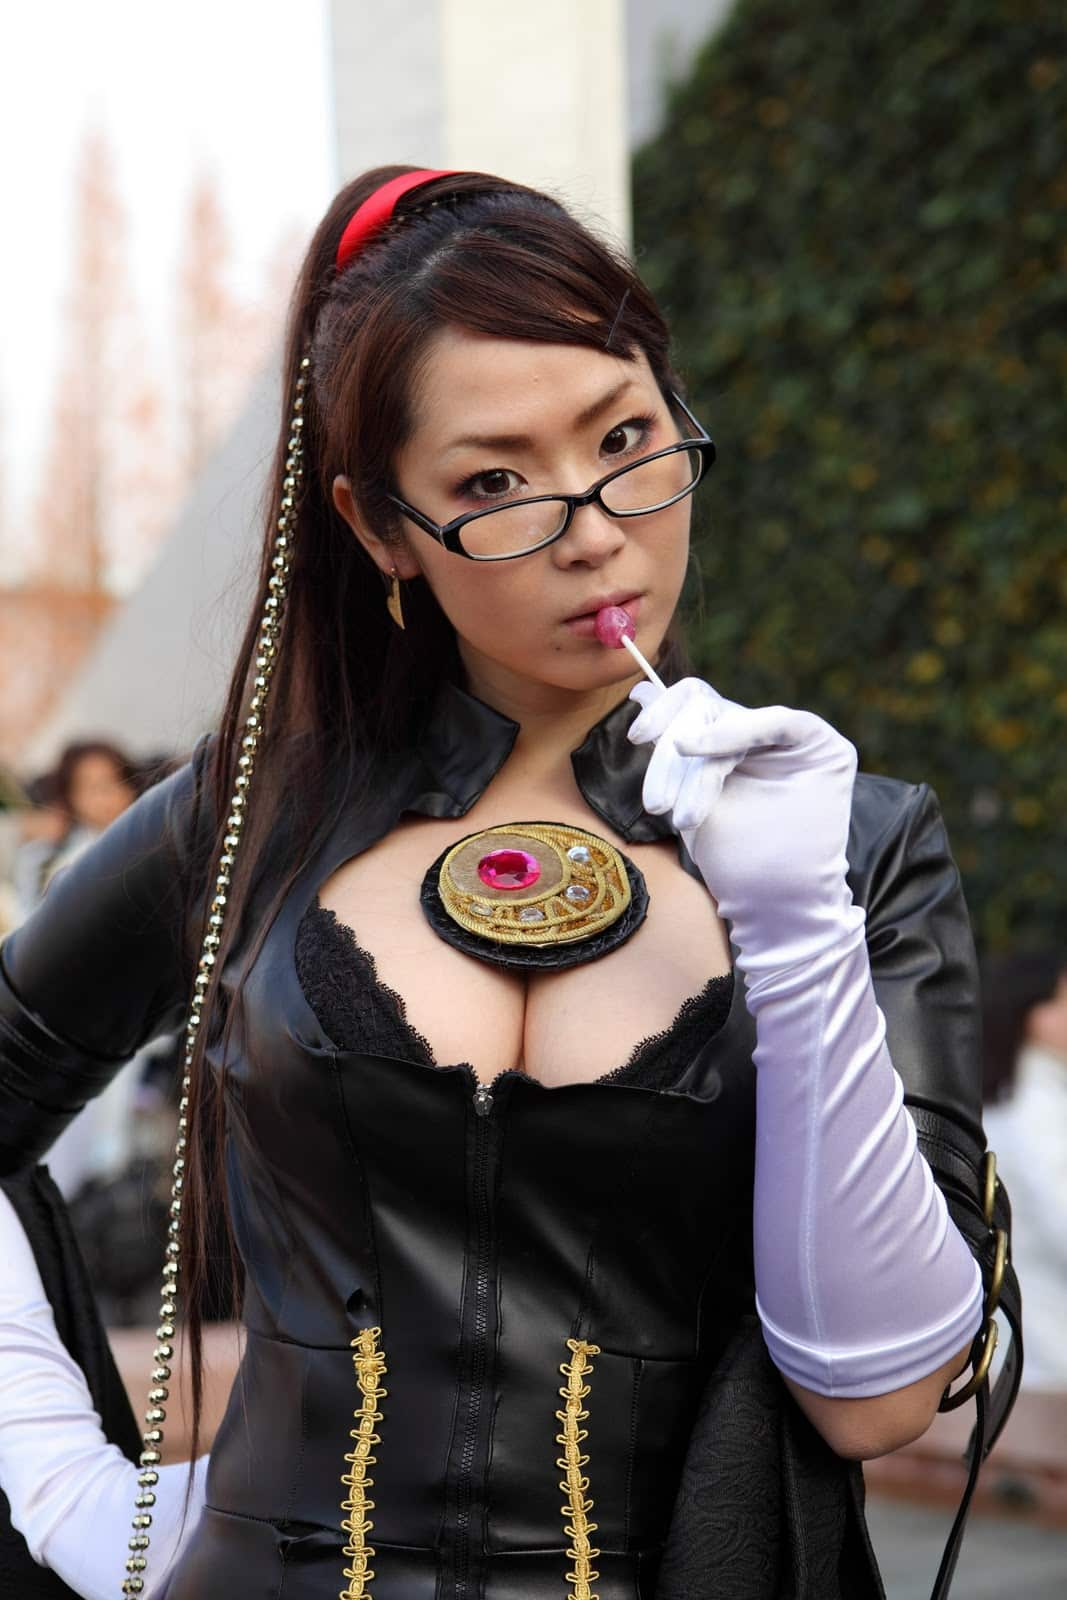 85618971_Sexy-Cosplay-Girl-in-Tokyo-2